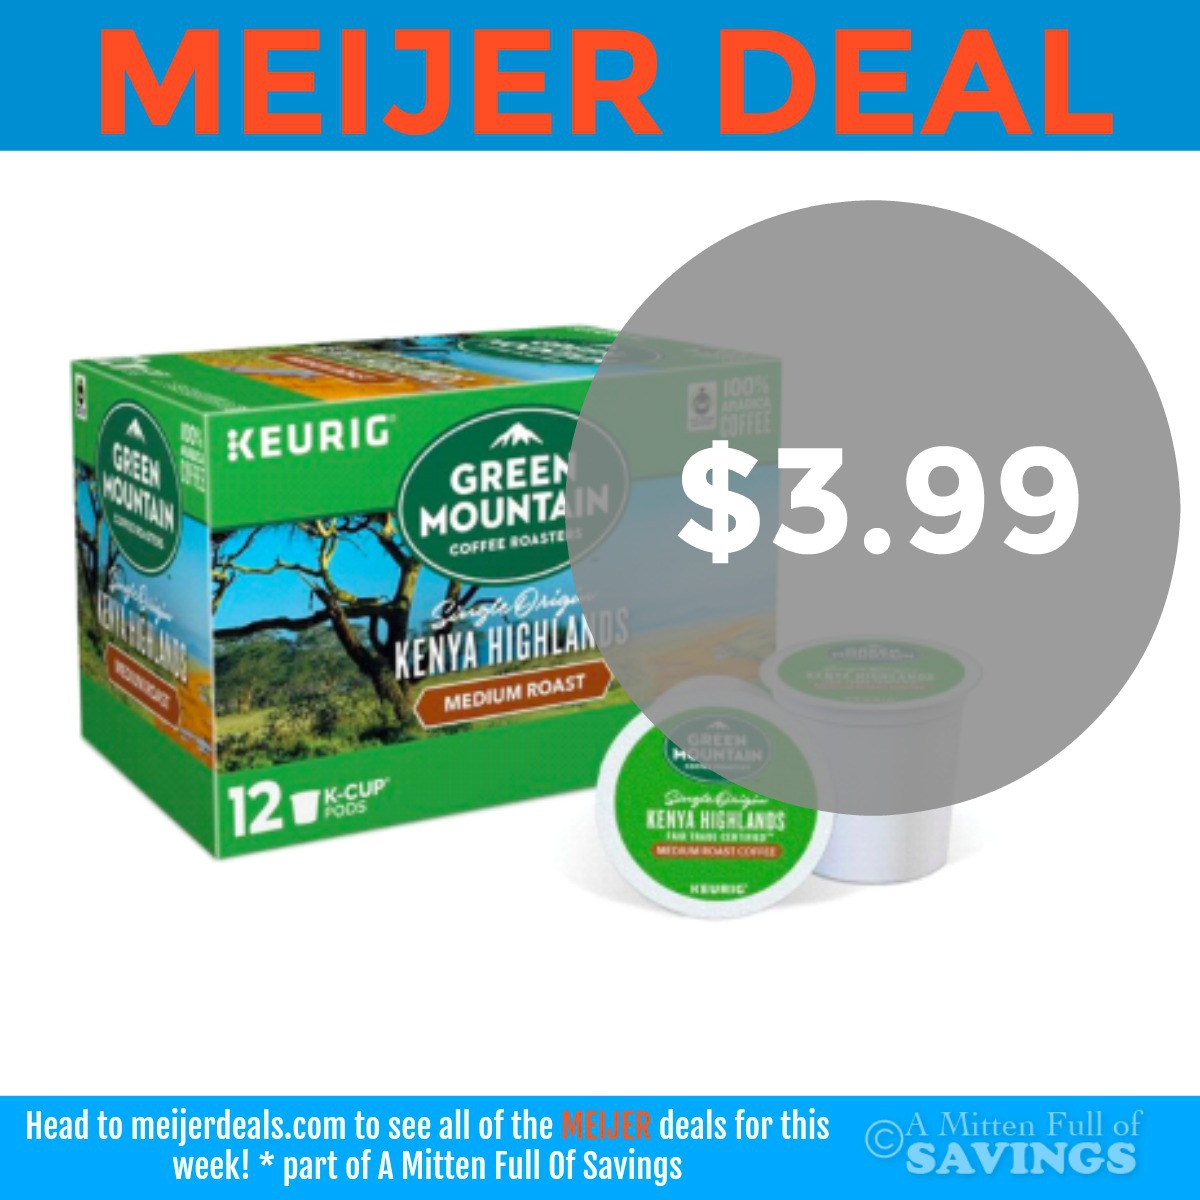 Meijer: Green Mountain K Cups $3.99 This Week